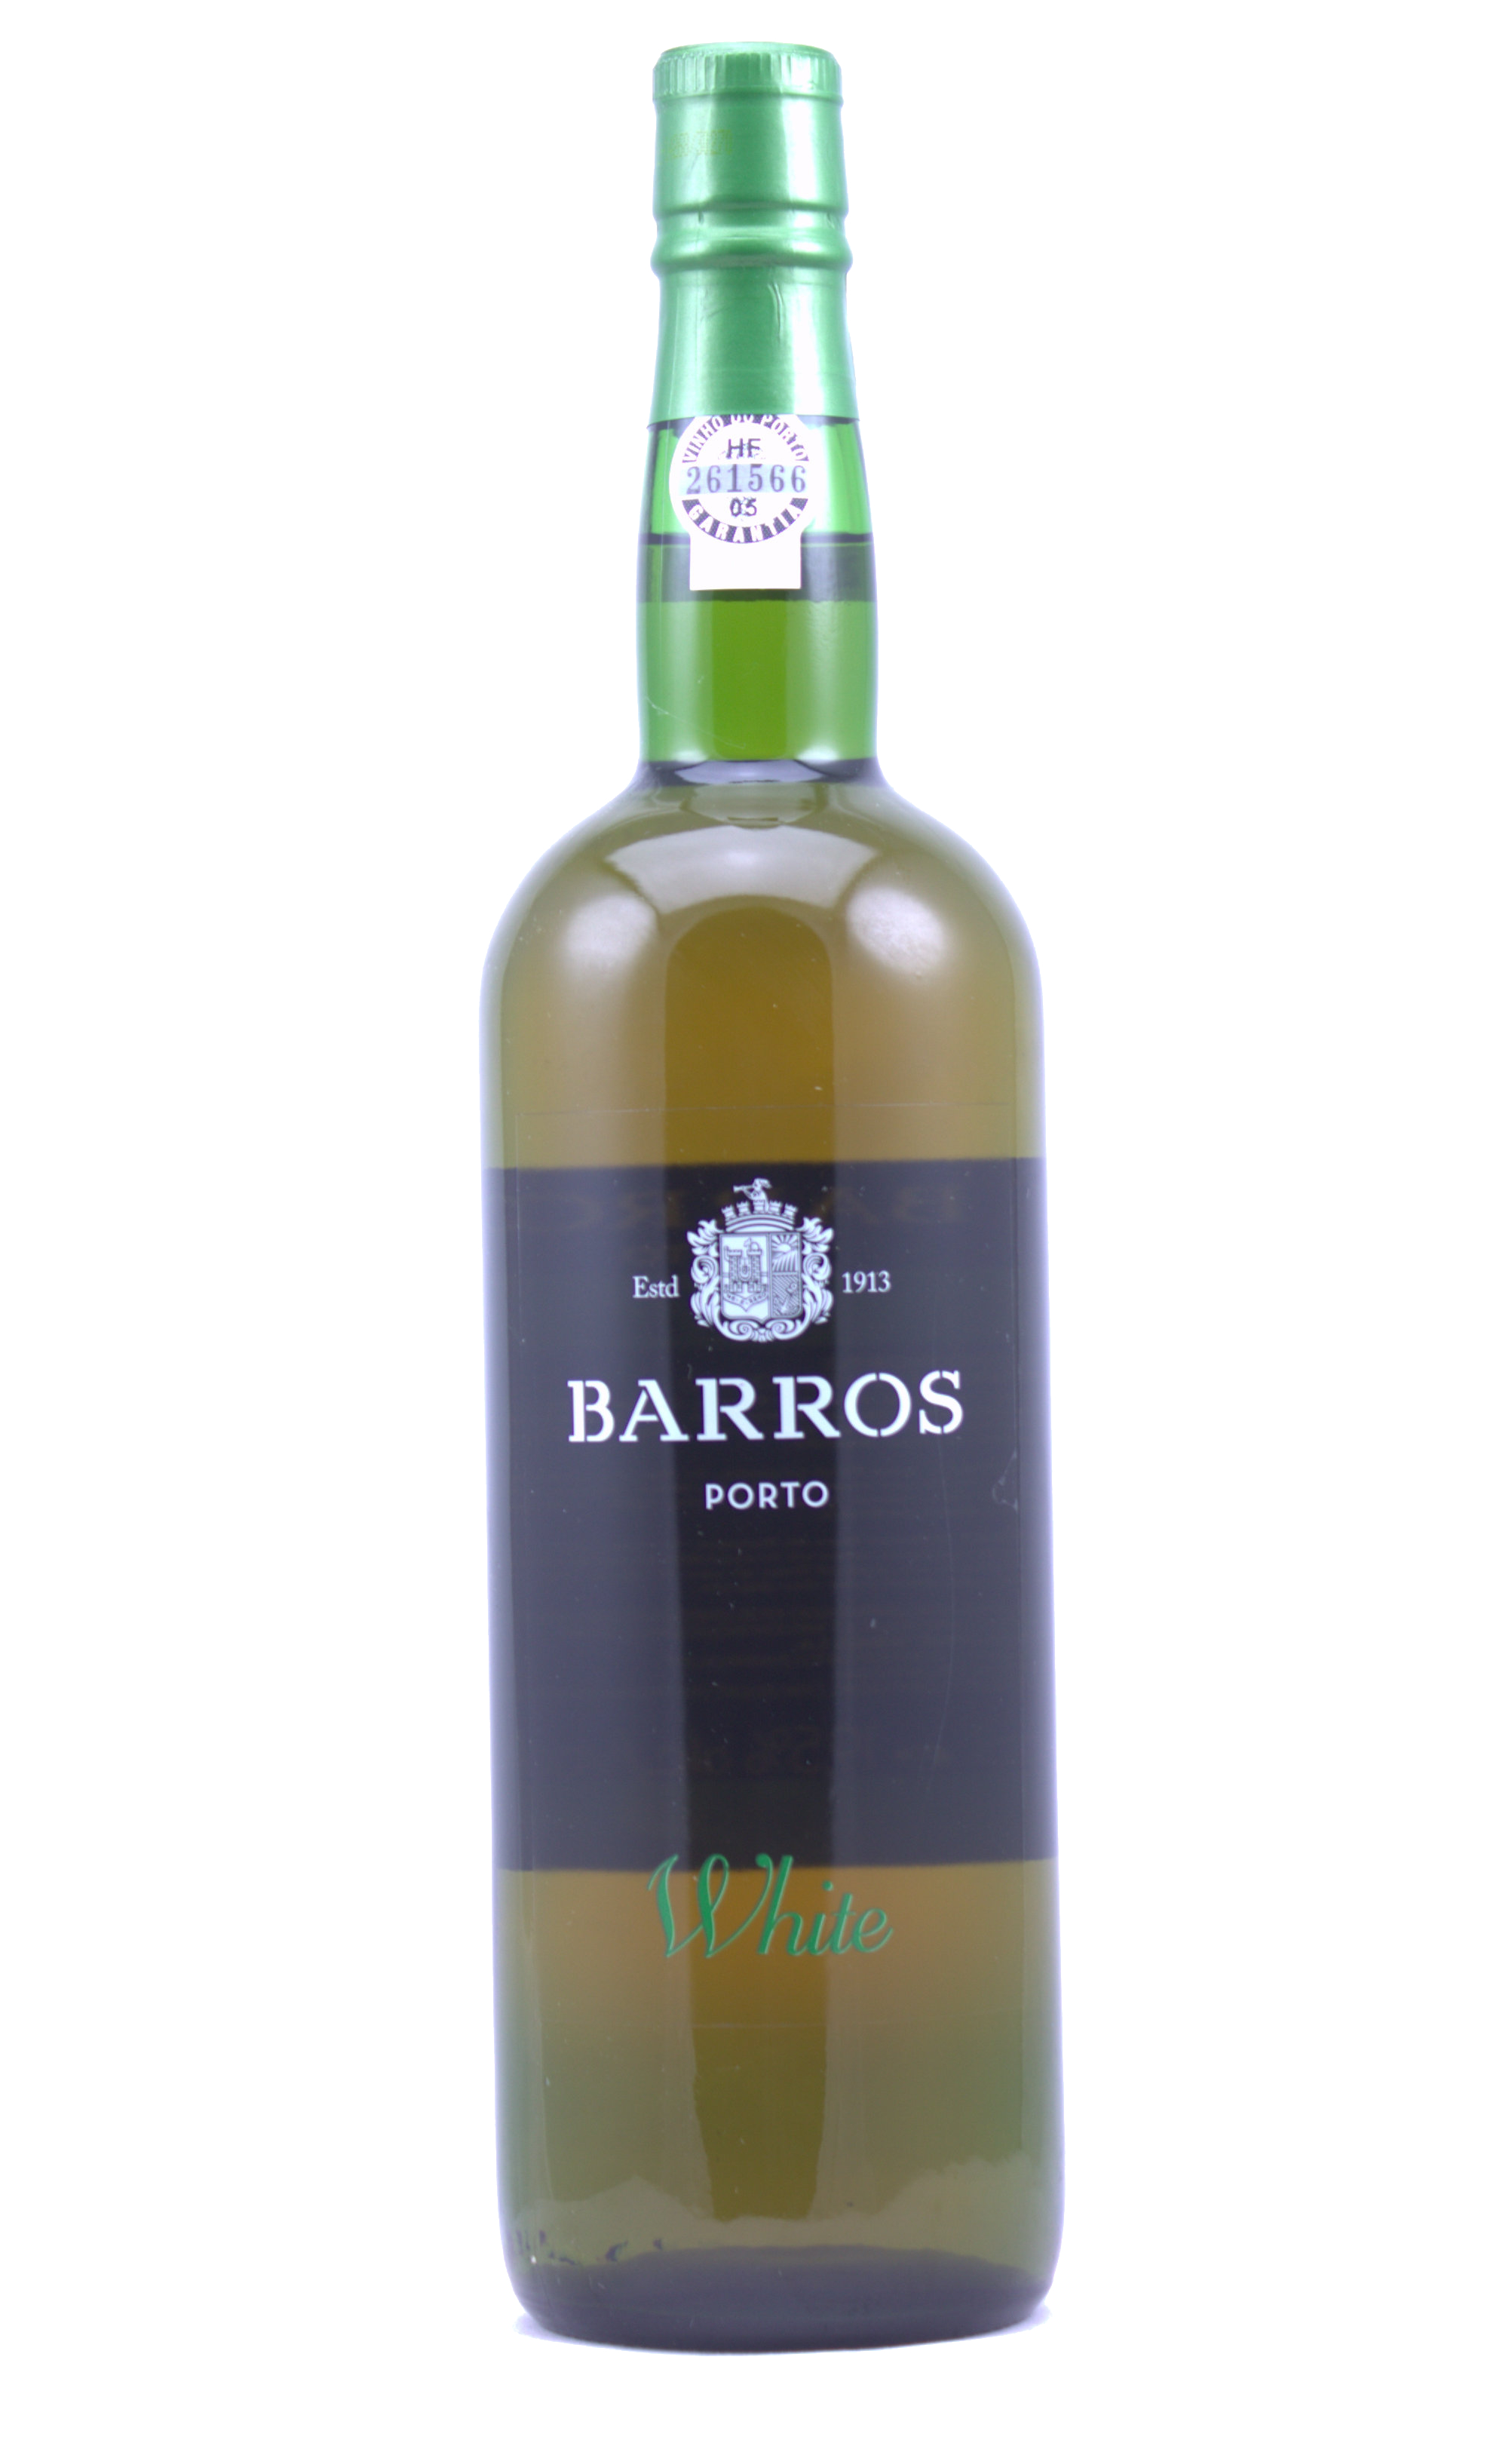 BARROS, White Port